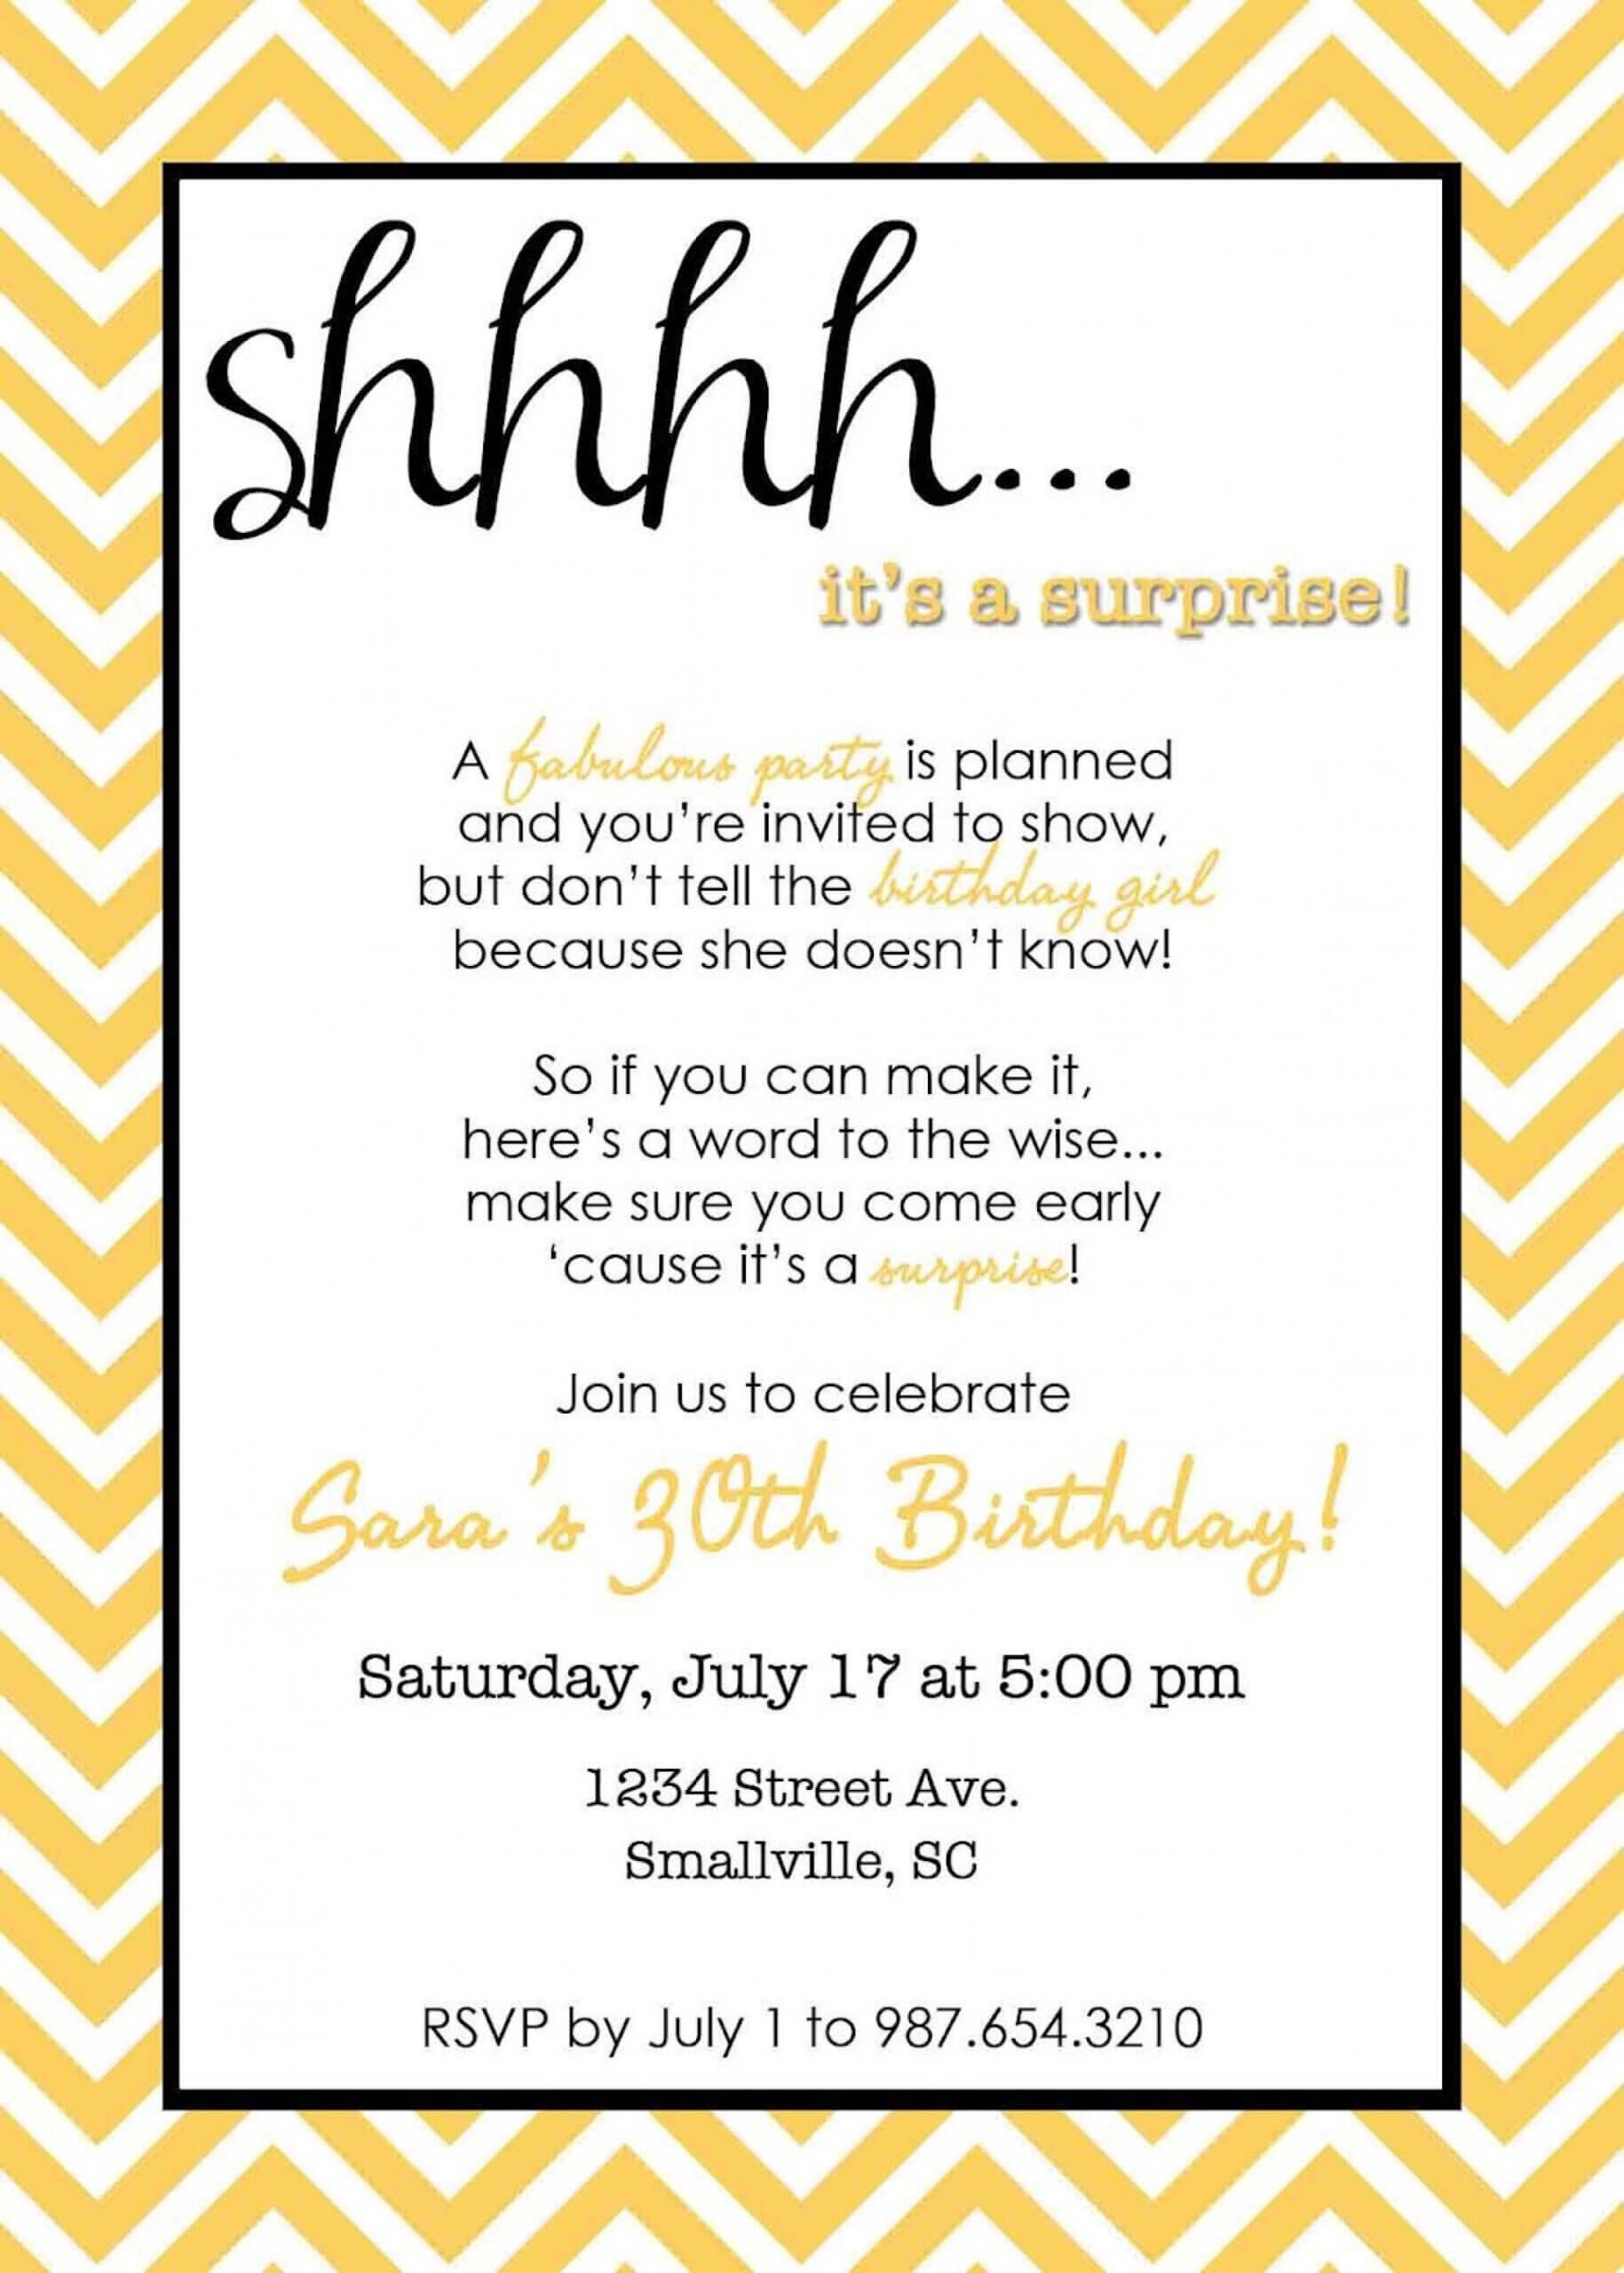 022 Party Invitations Template Word Surprise Templatesthday Pertaining To 30Th Birthday Party Invitation Template